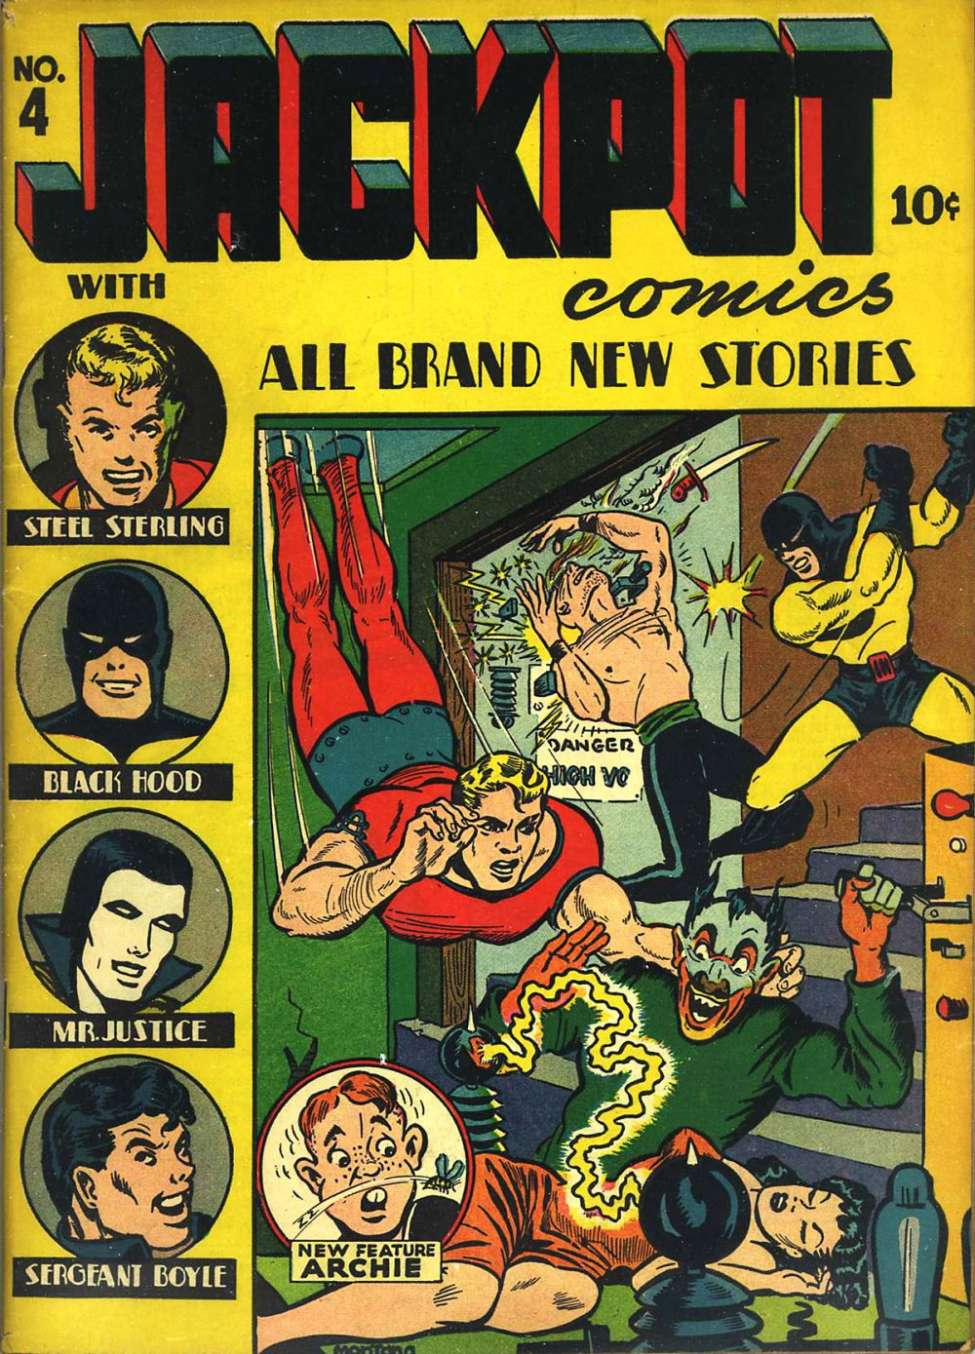 Comic Book Cover For Archie From MLJ Jackpot